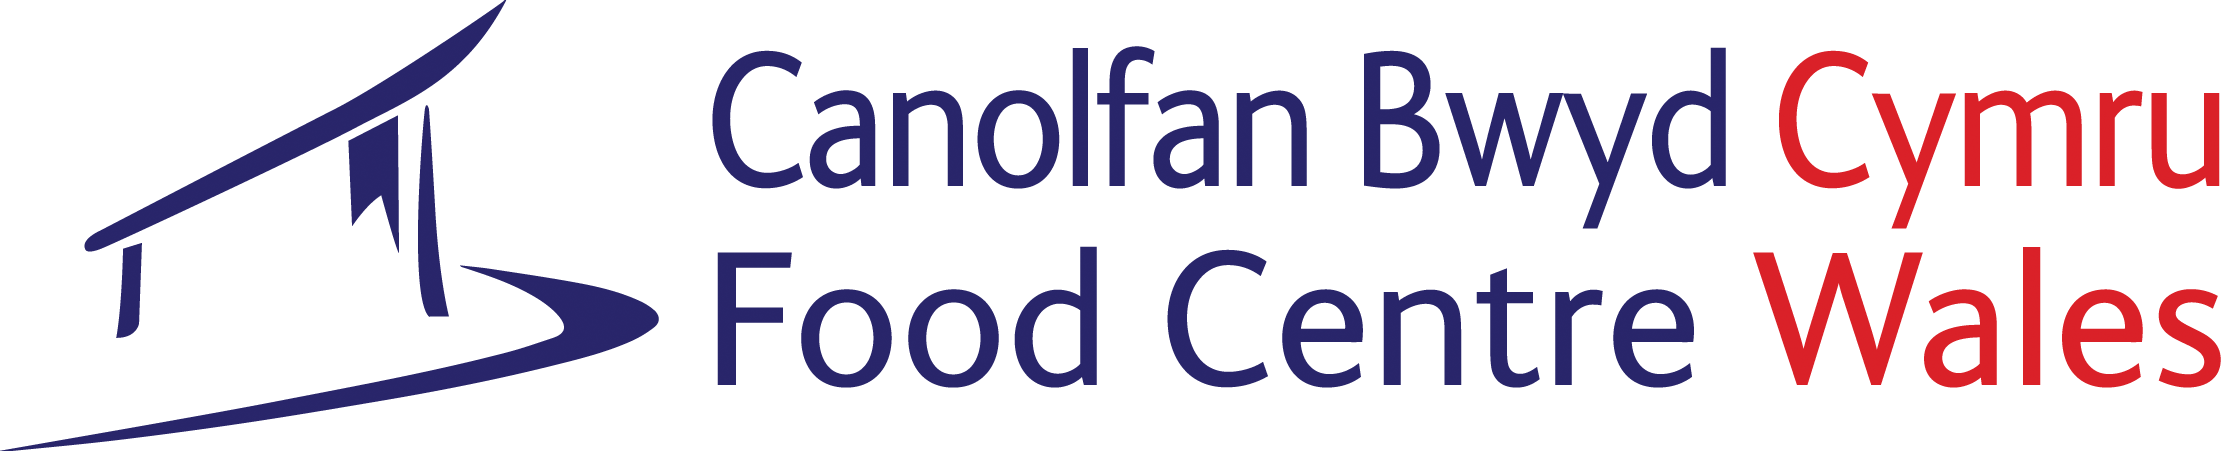 Food Centre Wales logo